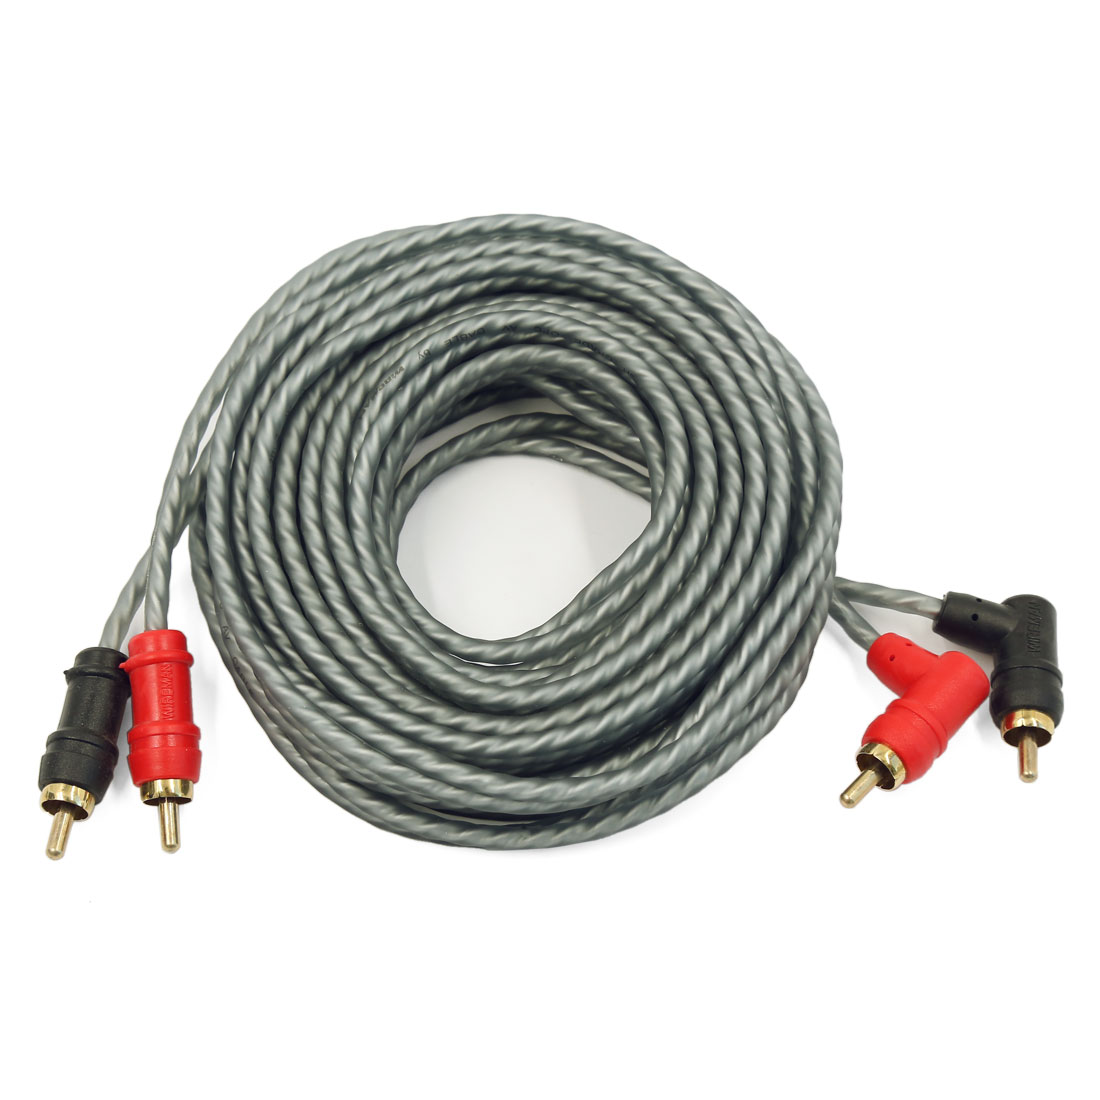 2RCA-2RCA Audio Cable Cord for Car Amplifier System Home Theater Gray 5M